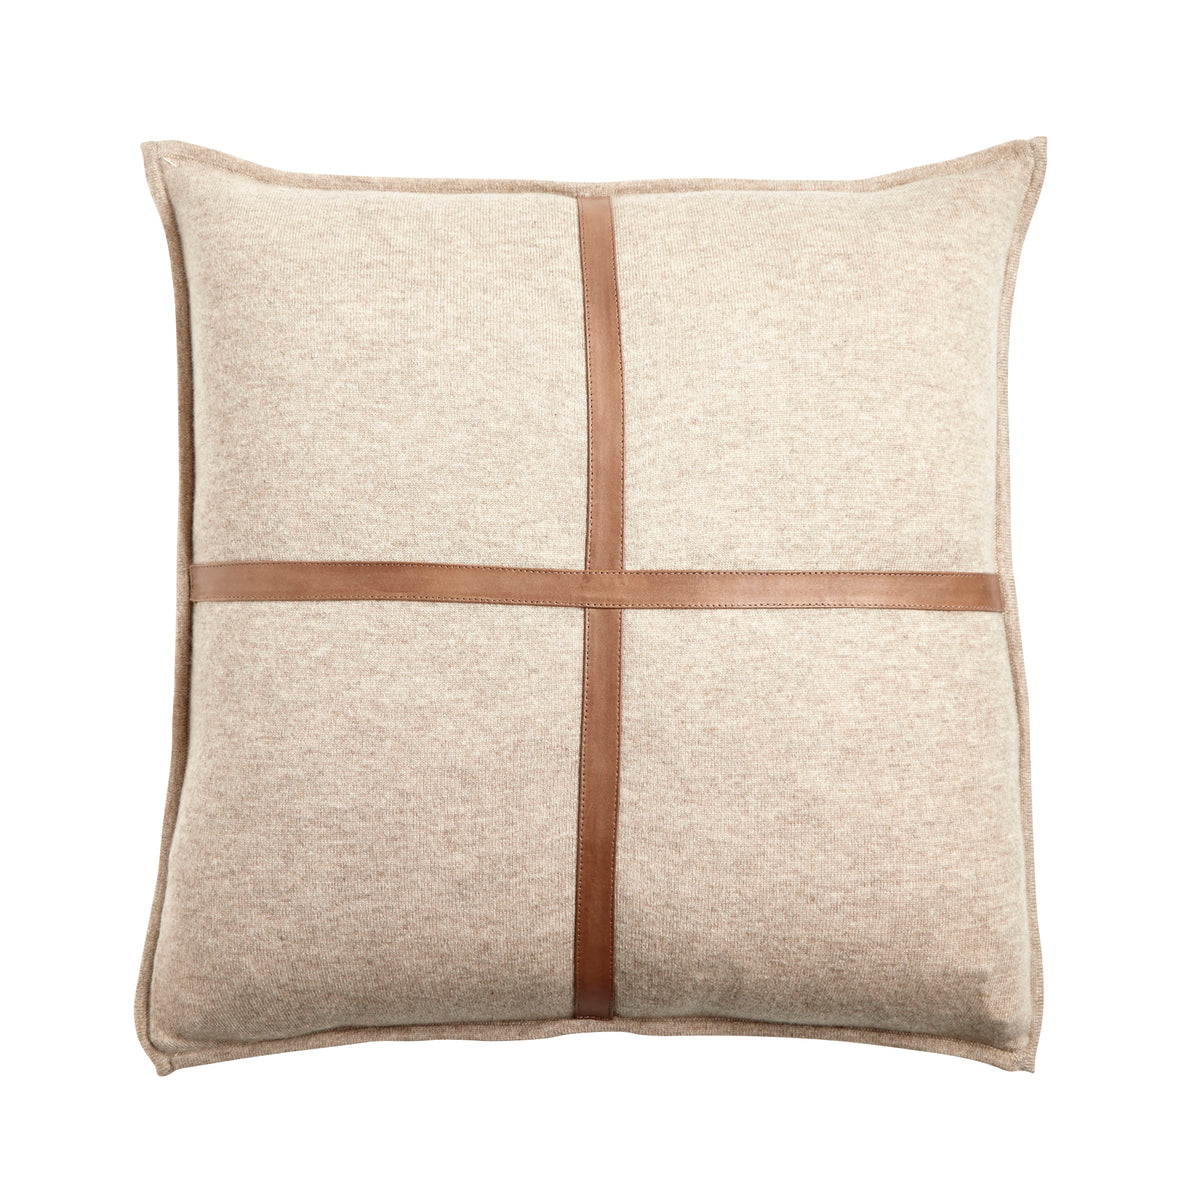 Taupe Cashmere and Suede Pillow